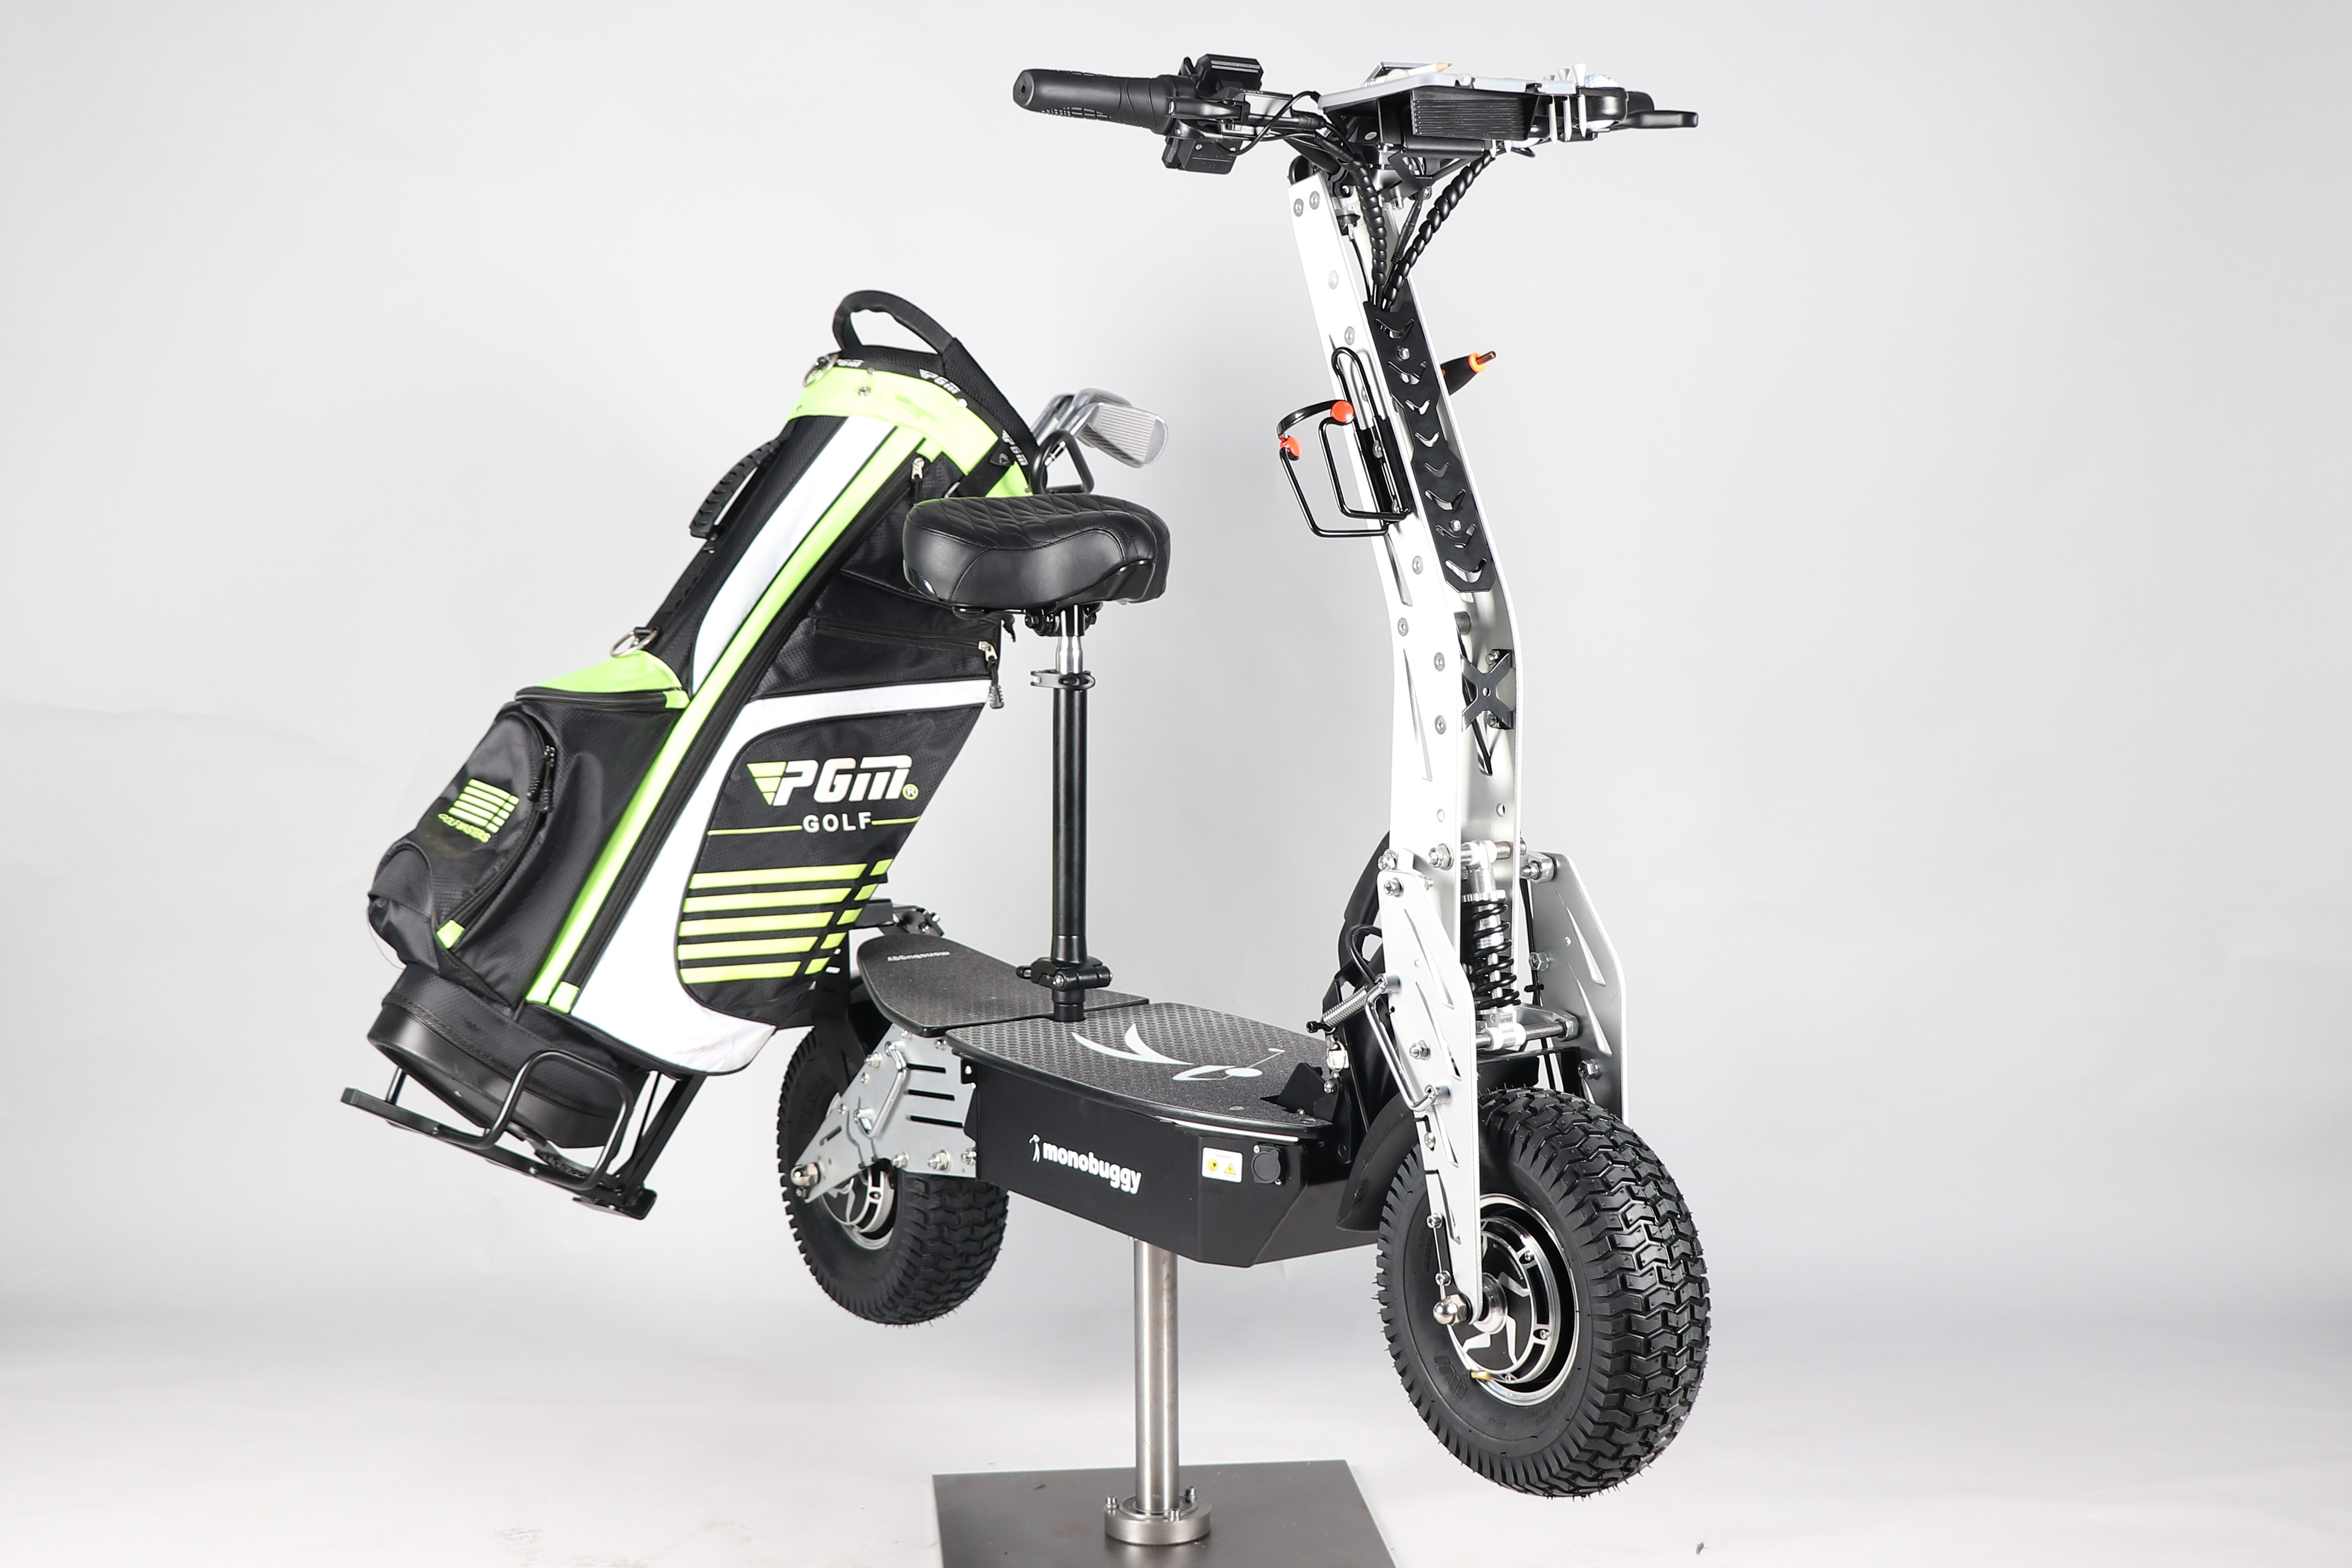 2021 Model Monobuggy Golfscooter (2)